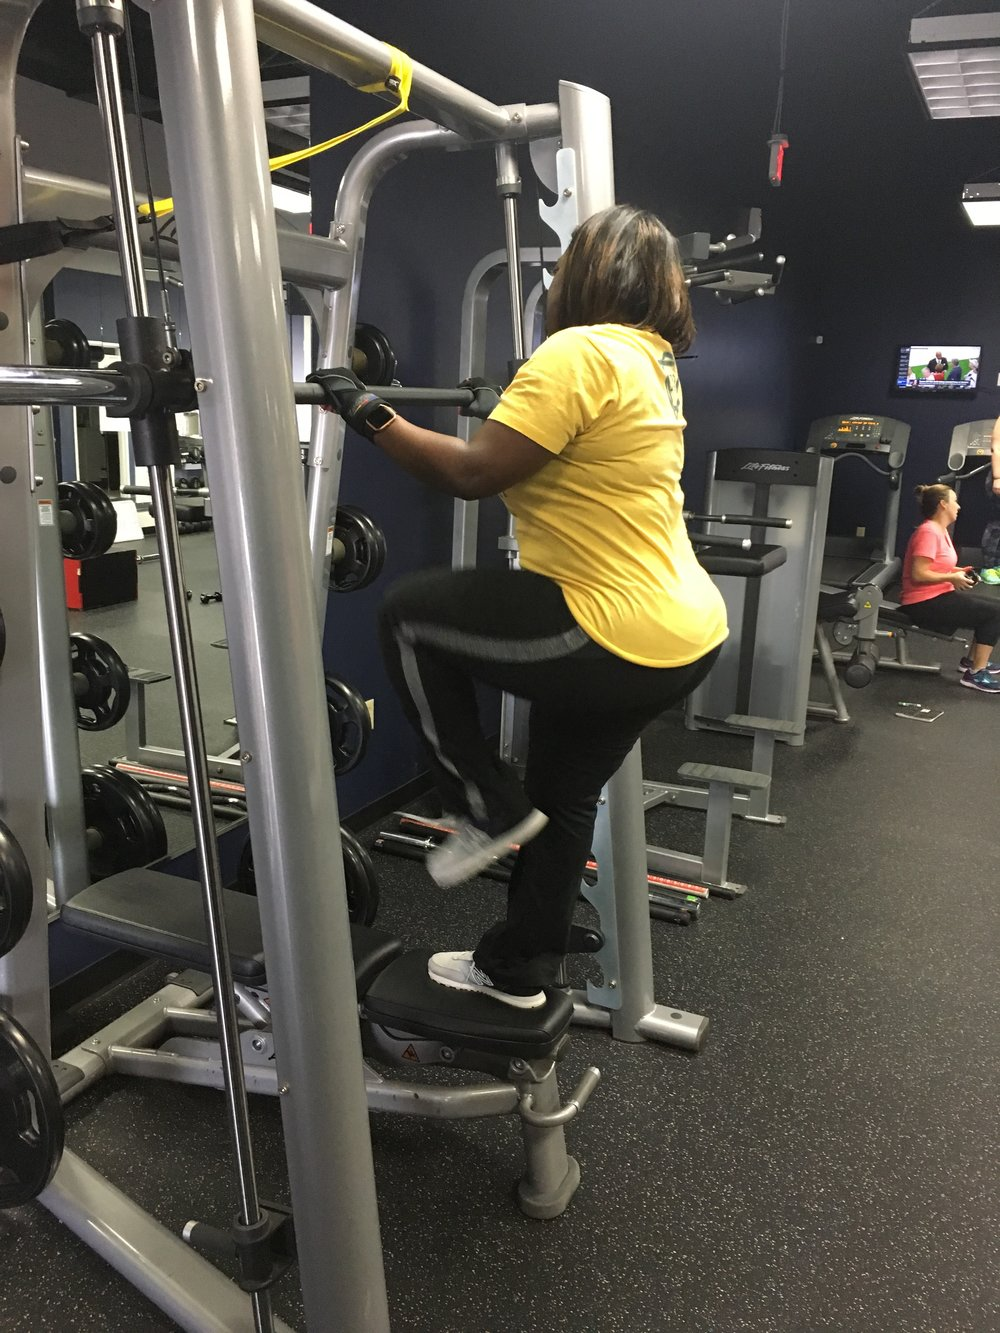 About My House Fitness, Plano Texas